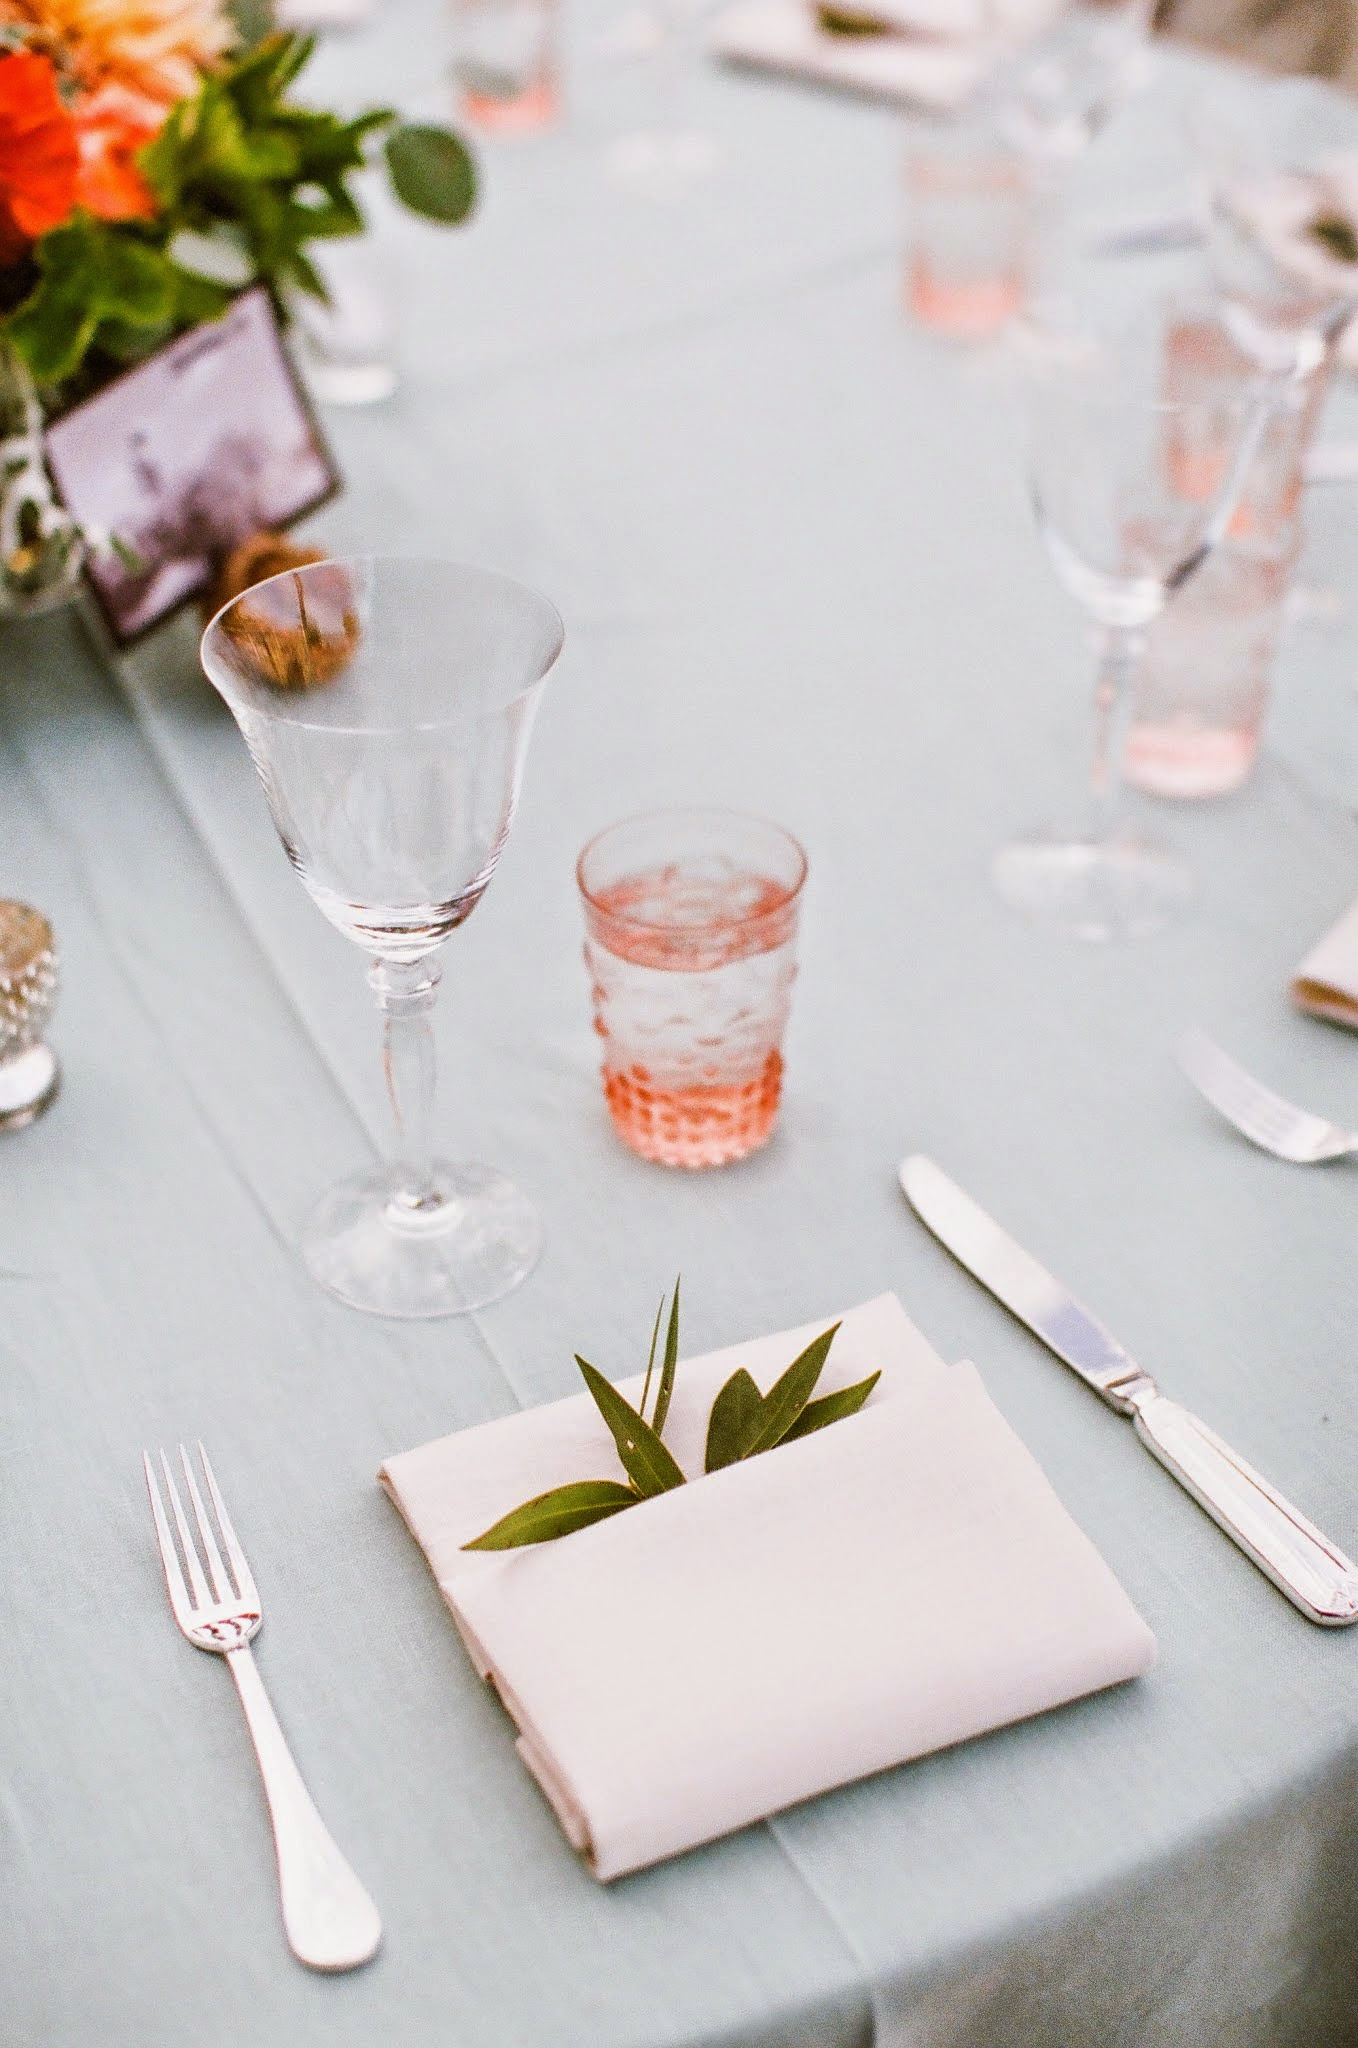 www.felicievents.com | Felici Events | Historical Museum Wedding | Eclectic Orange Wedding | Place Setting Details